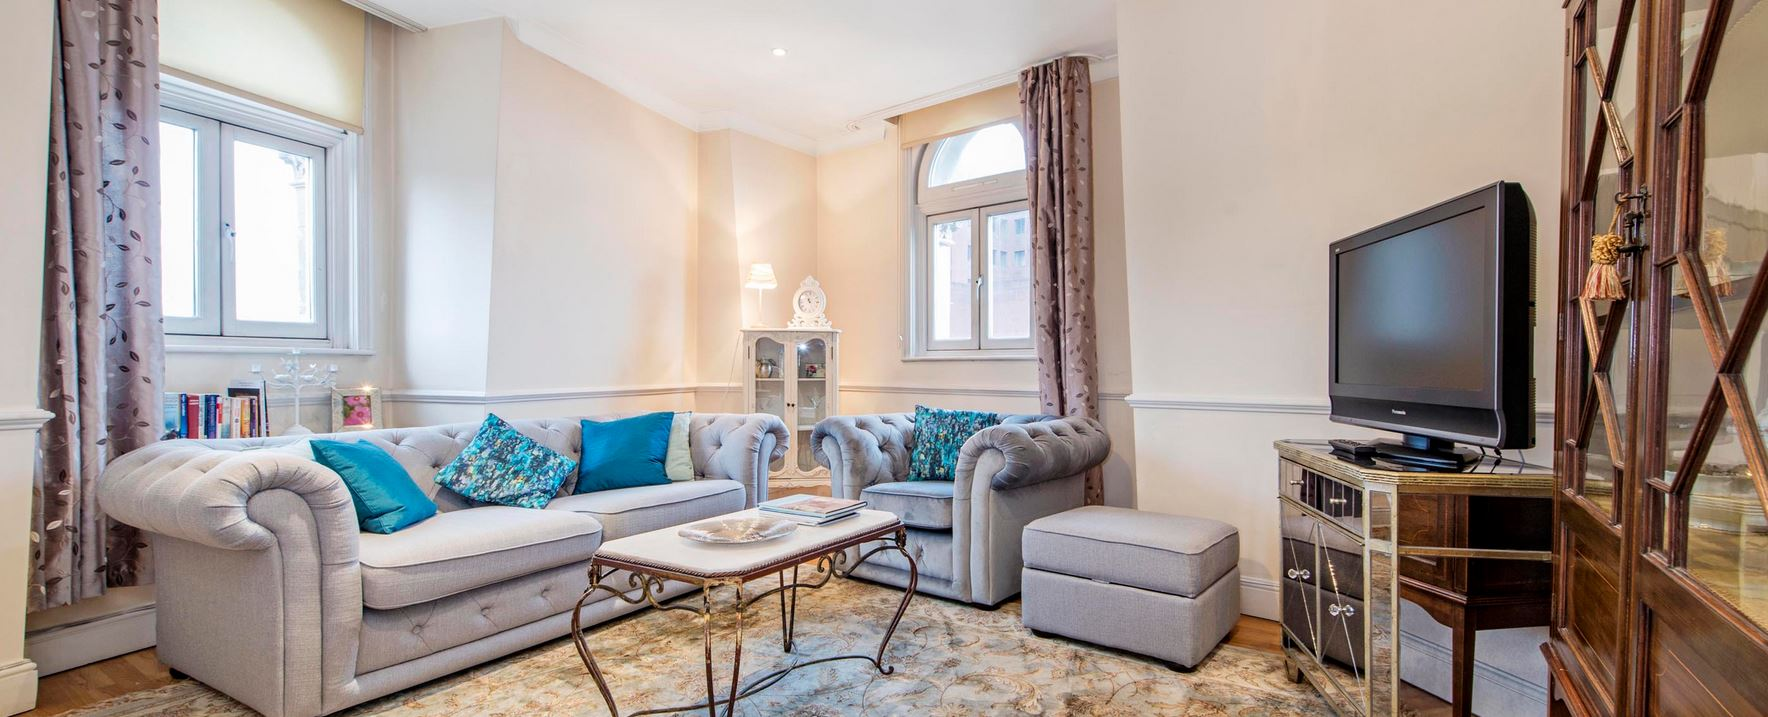 Covent Garden 2 Bedroom 2 Bathroom Penthouse